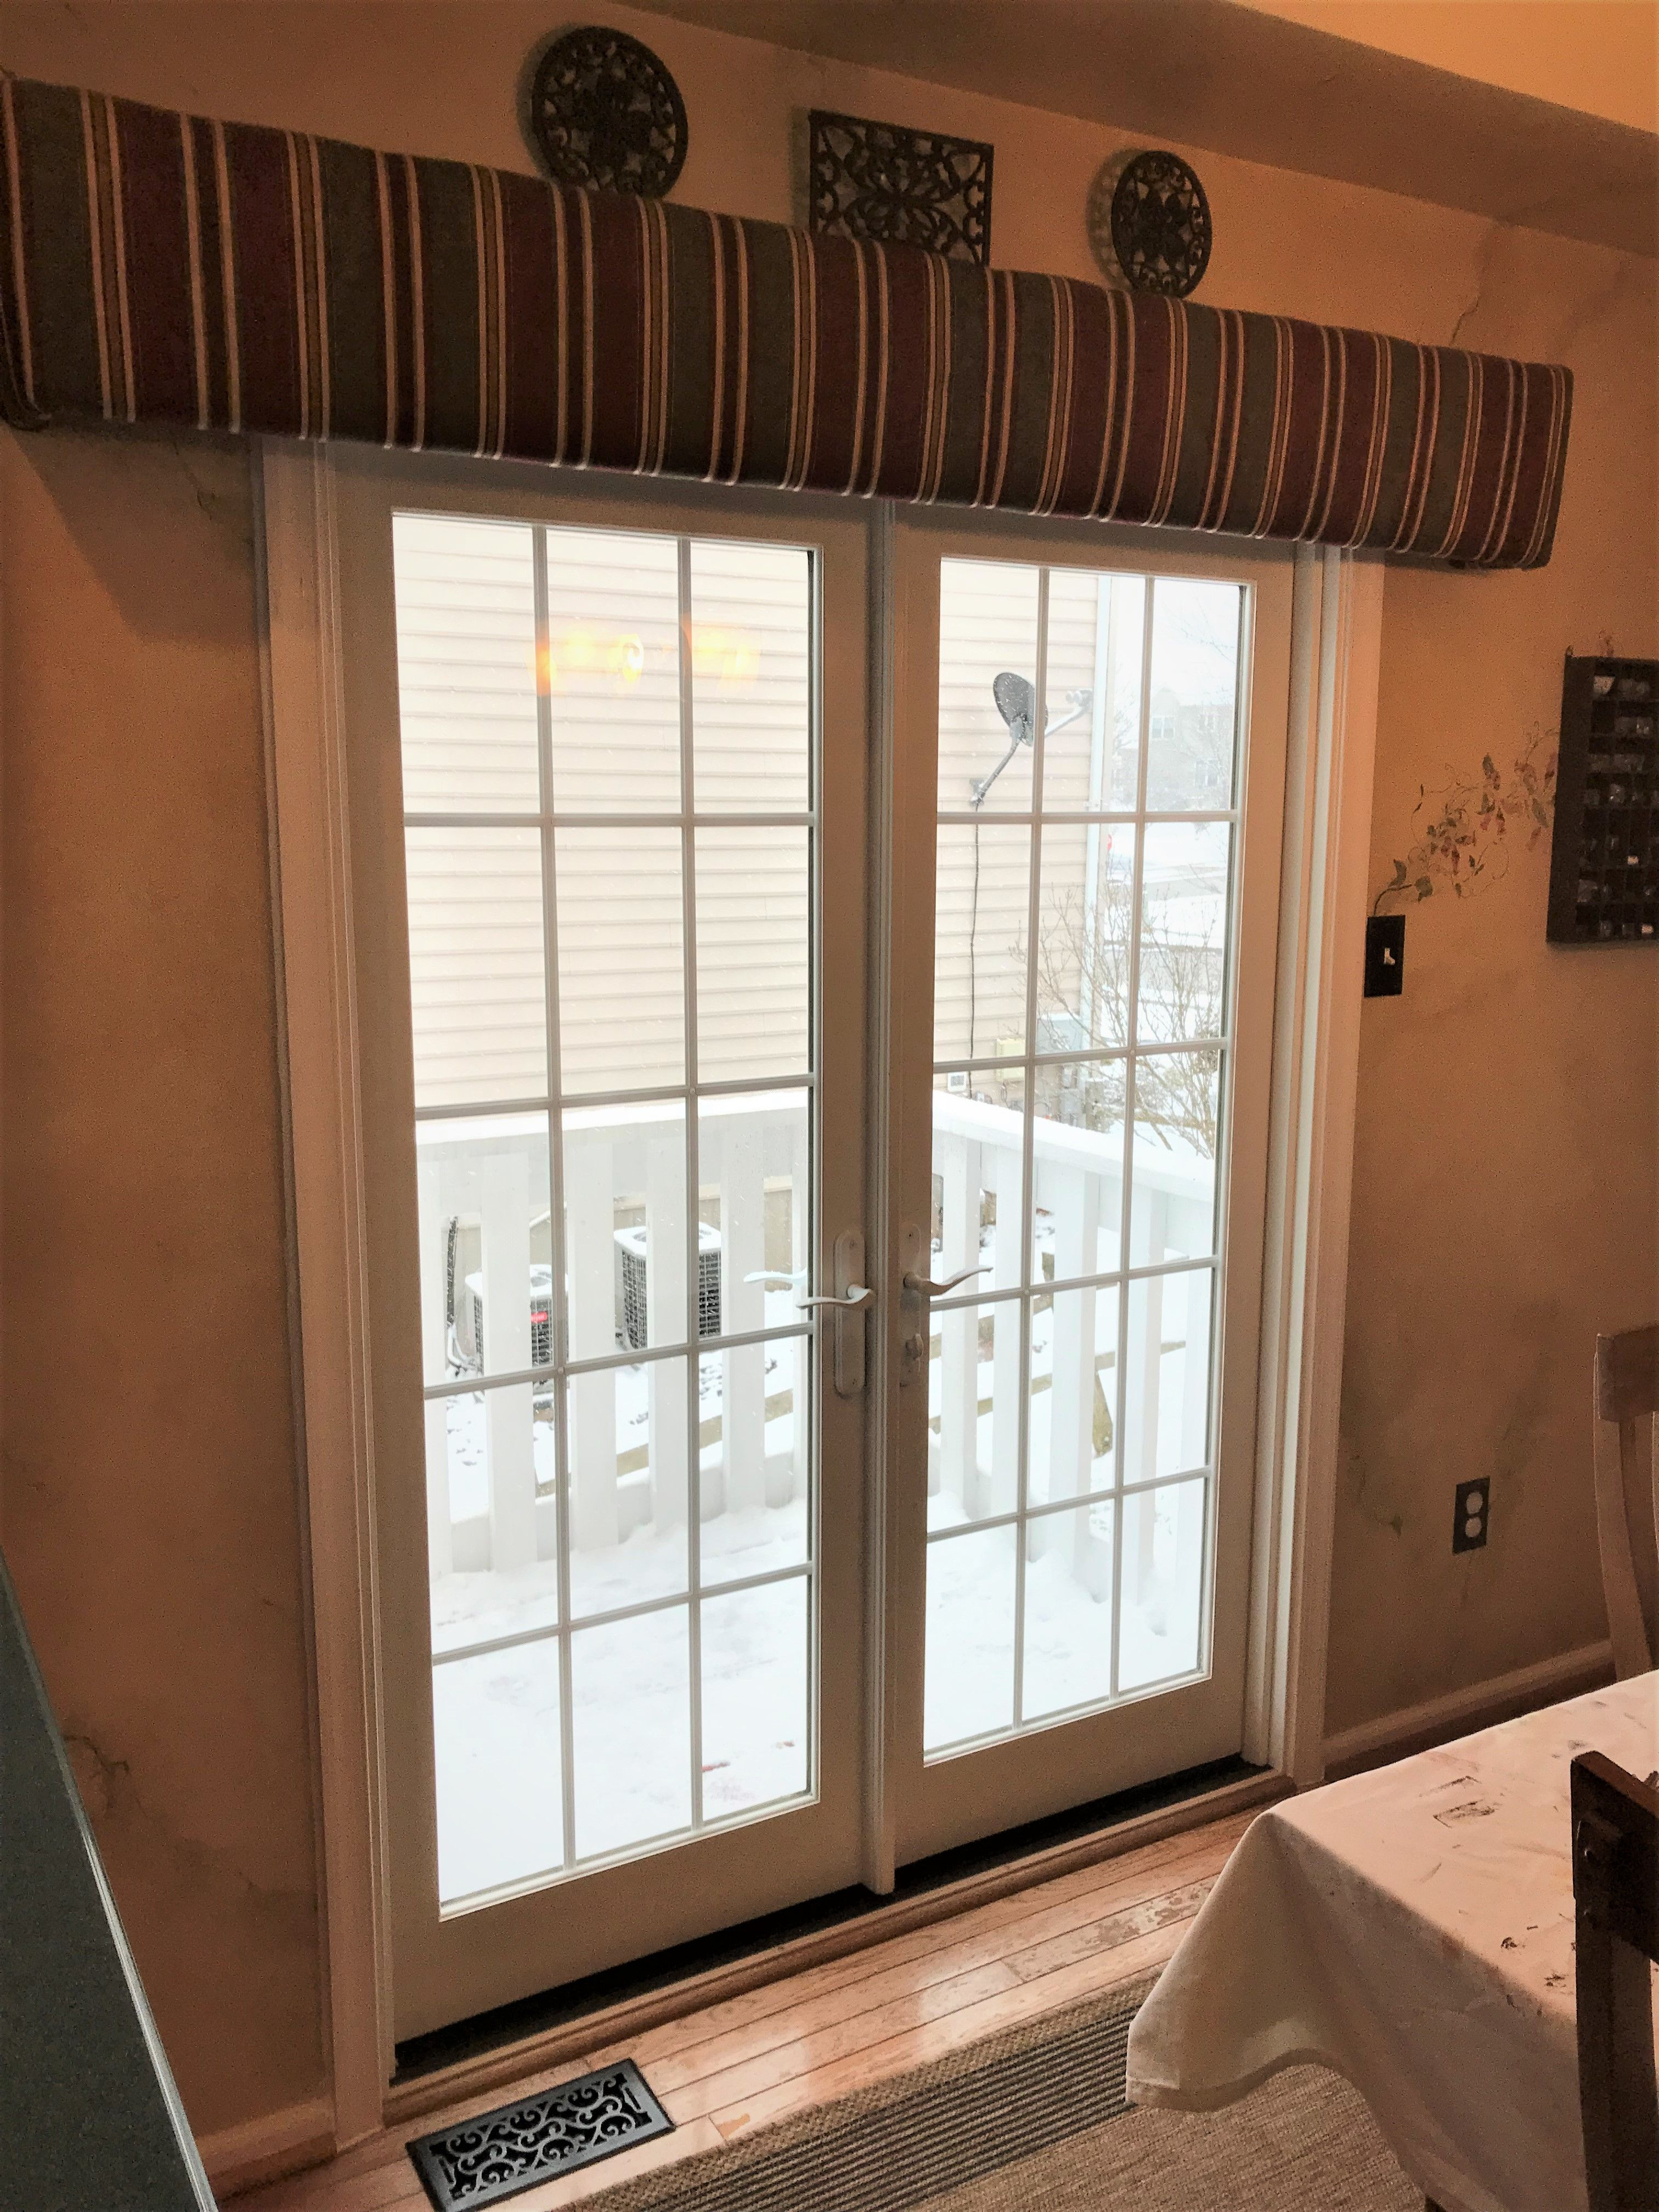 Marvin Integrity French Outswing Door Installation In Collegeville Pa Replacement Patio Doors Door Installation Patio Door Installation